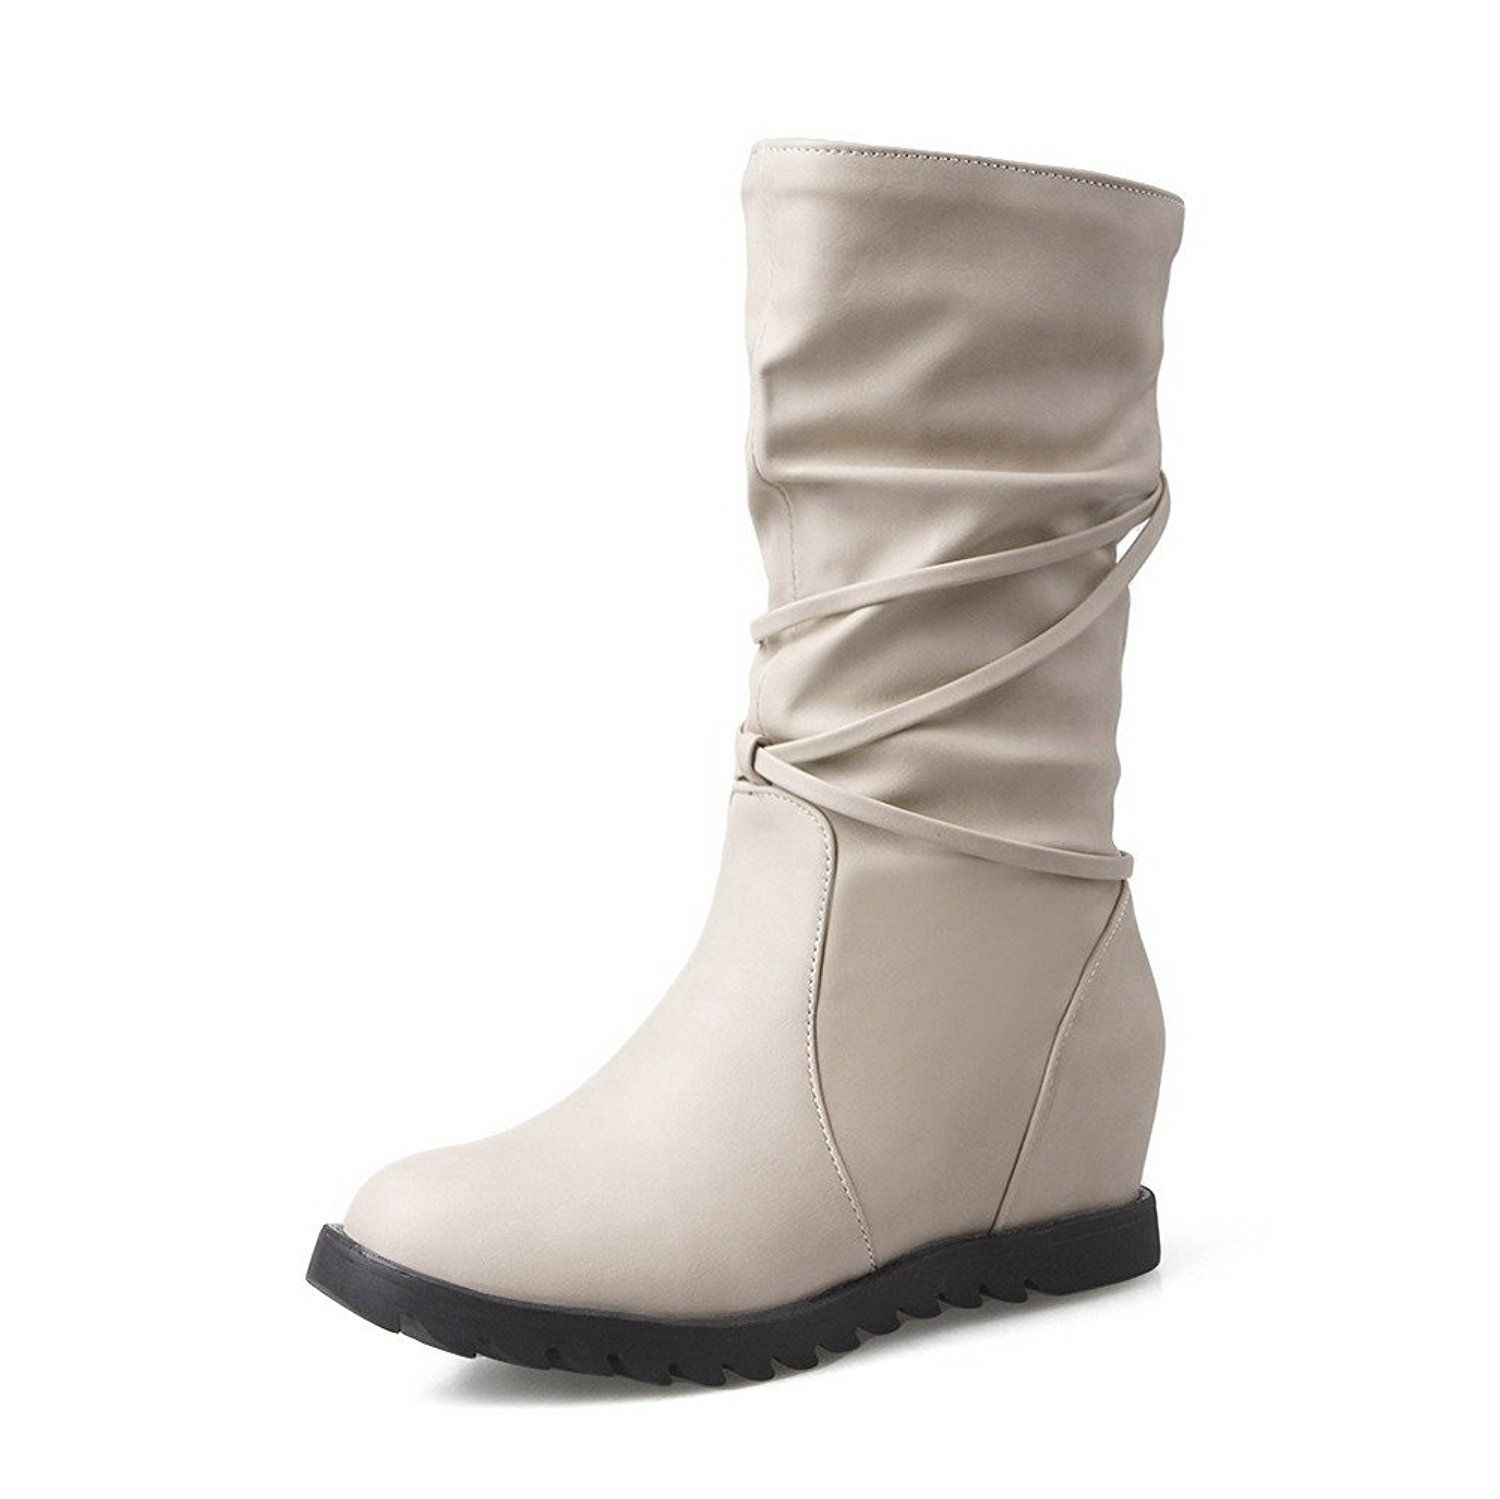 Allhqfashion Women S Mid Top Pull On Soft Material Kitten Heels Round Closed Toe Boots Save This Wonderf Kitten Heel Boots Boots Boot Shoes Women